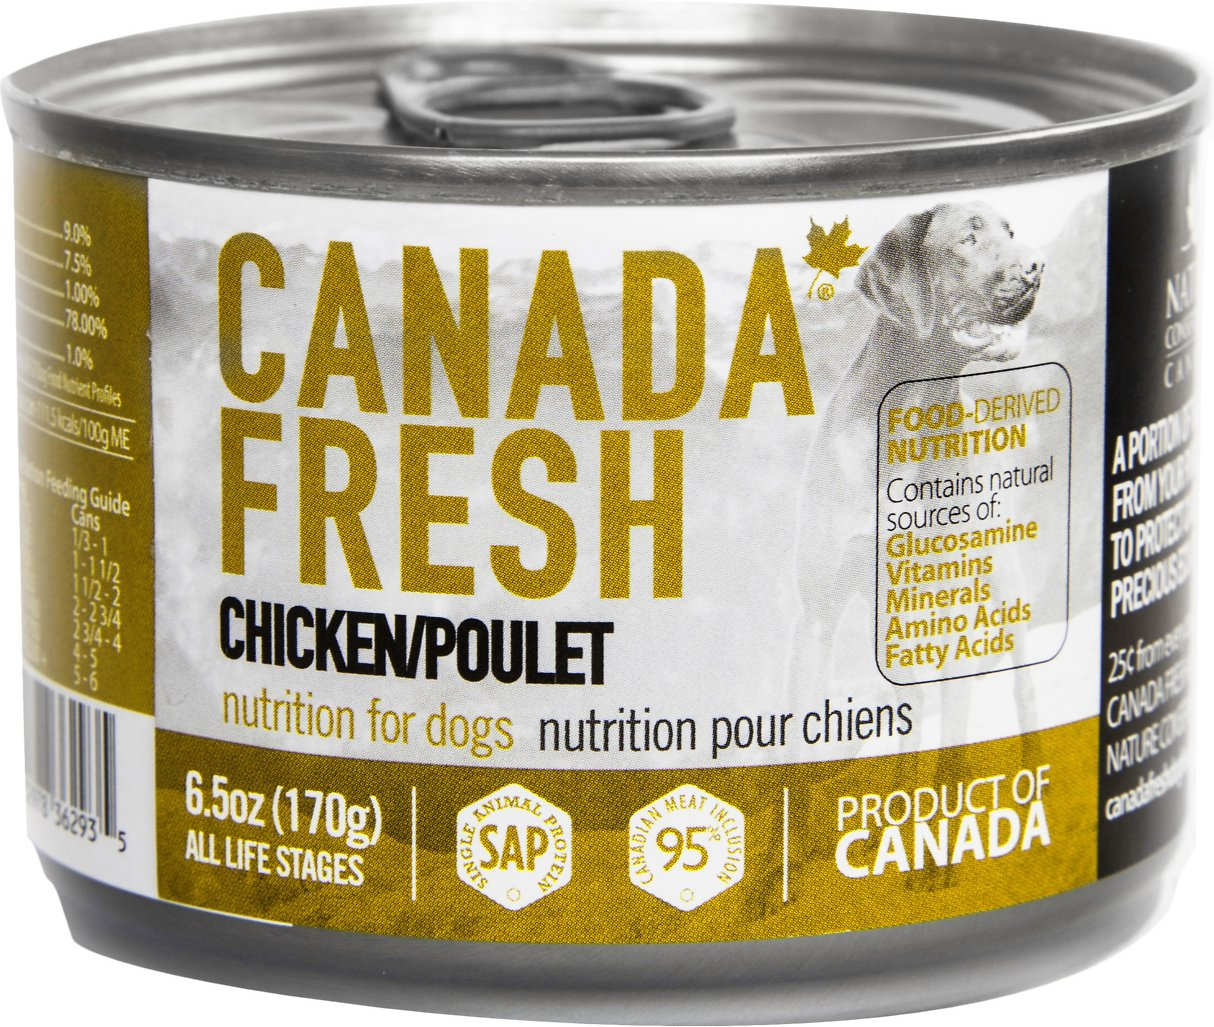 Health Canned Dog Food Review